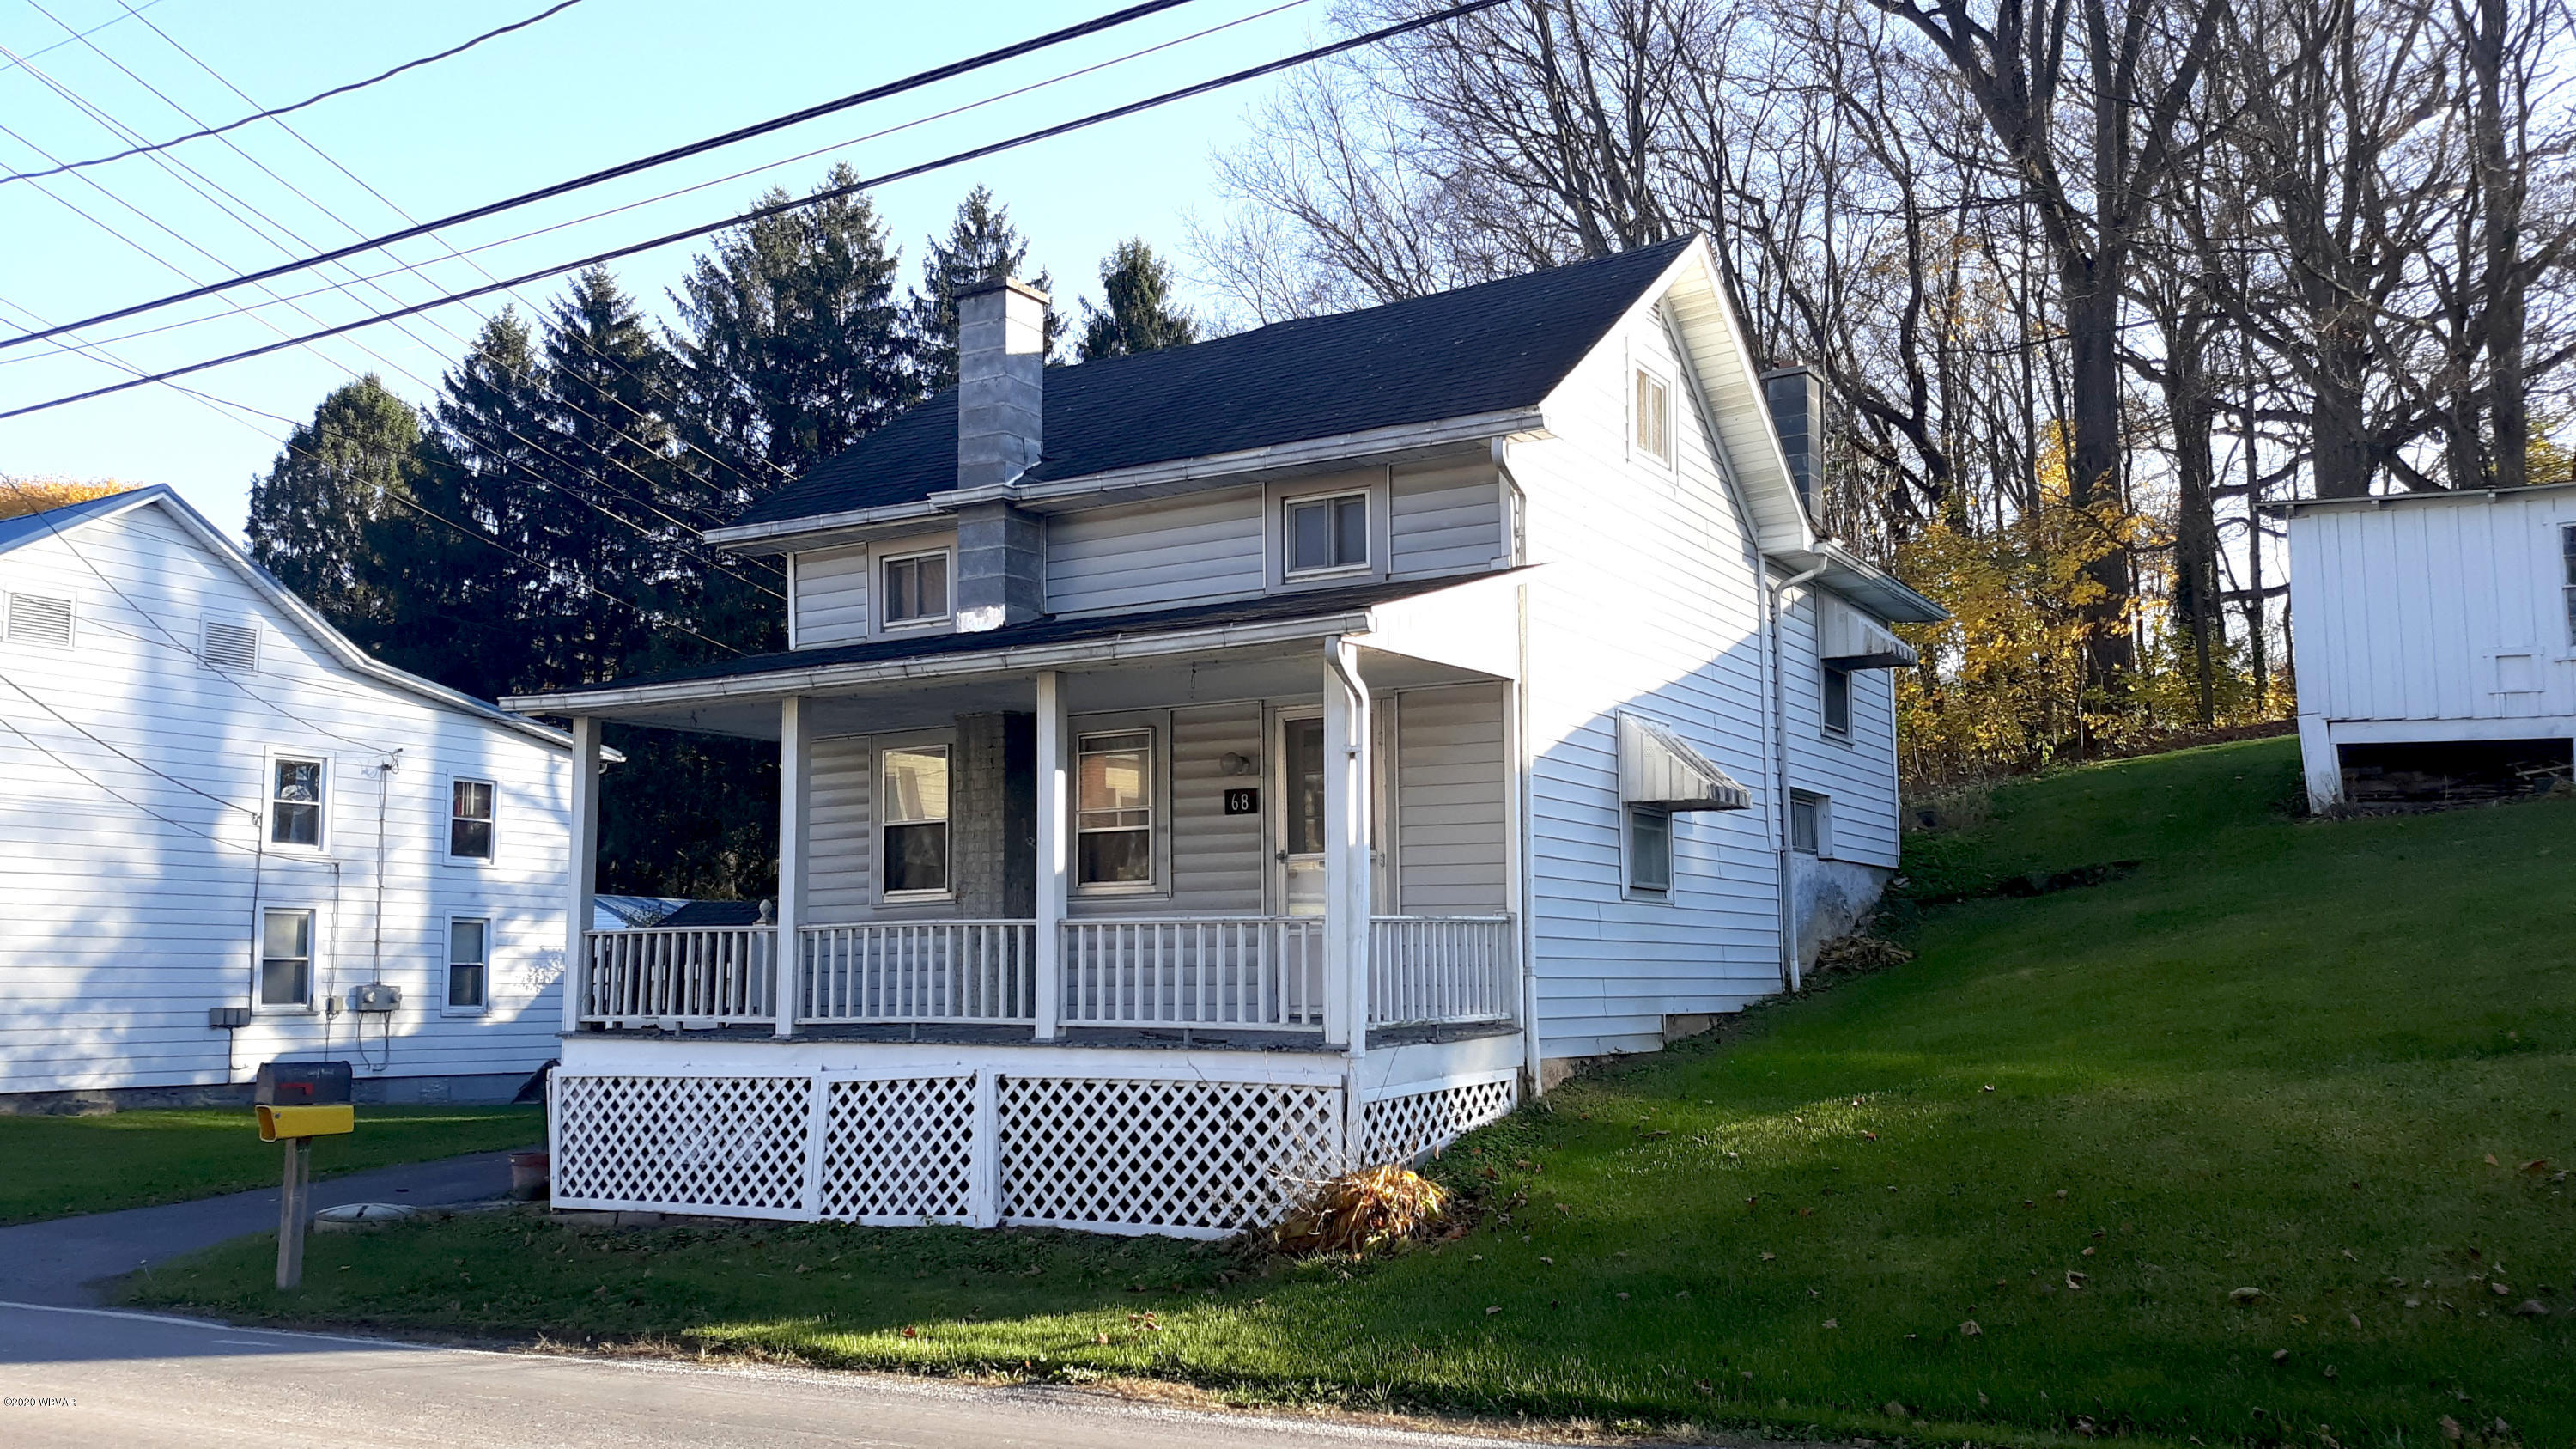 68 FAIRGROUND ROAD, Mill Hall, PA 17751, 3 Bedrooms Bedrooms, ,2 BathroomsBathrooms,Residential,For sale,FAIRGROUND,WB-91483